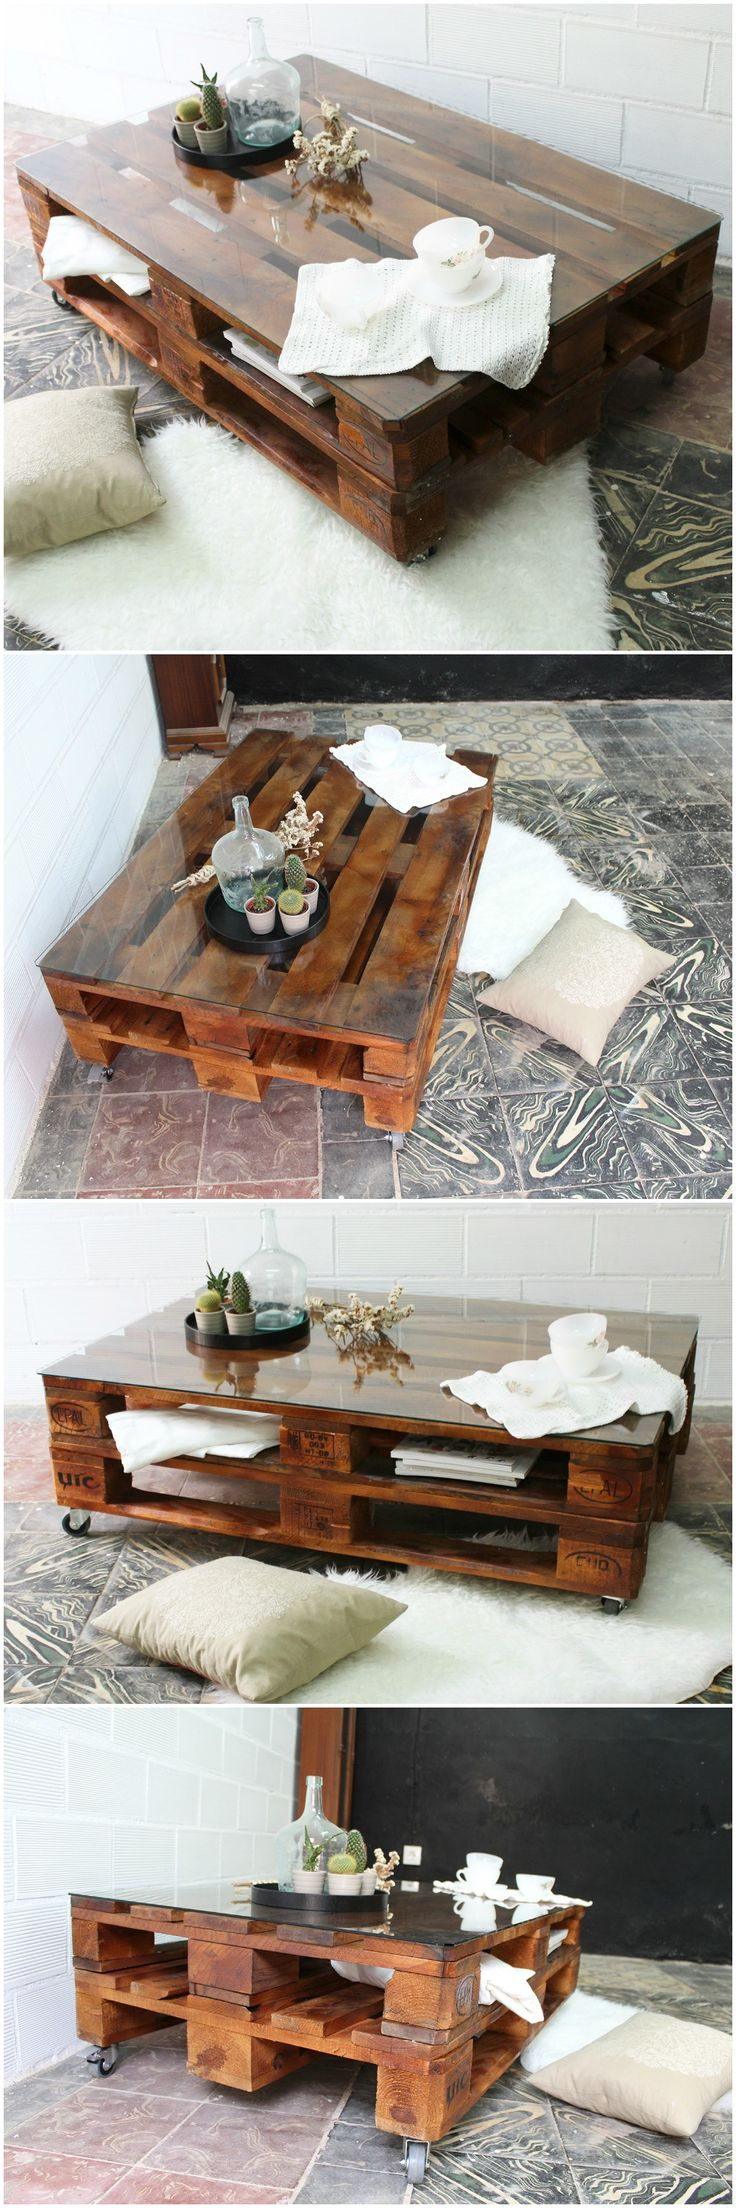 Best 25 pallet tables ideas on pinterest pallet table for Mesa vidrio